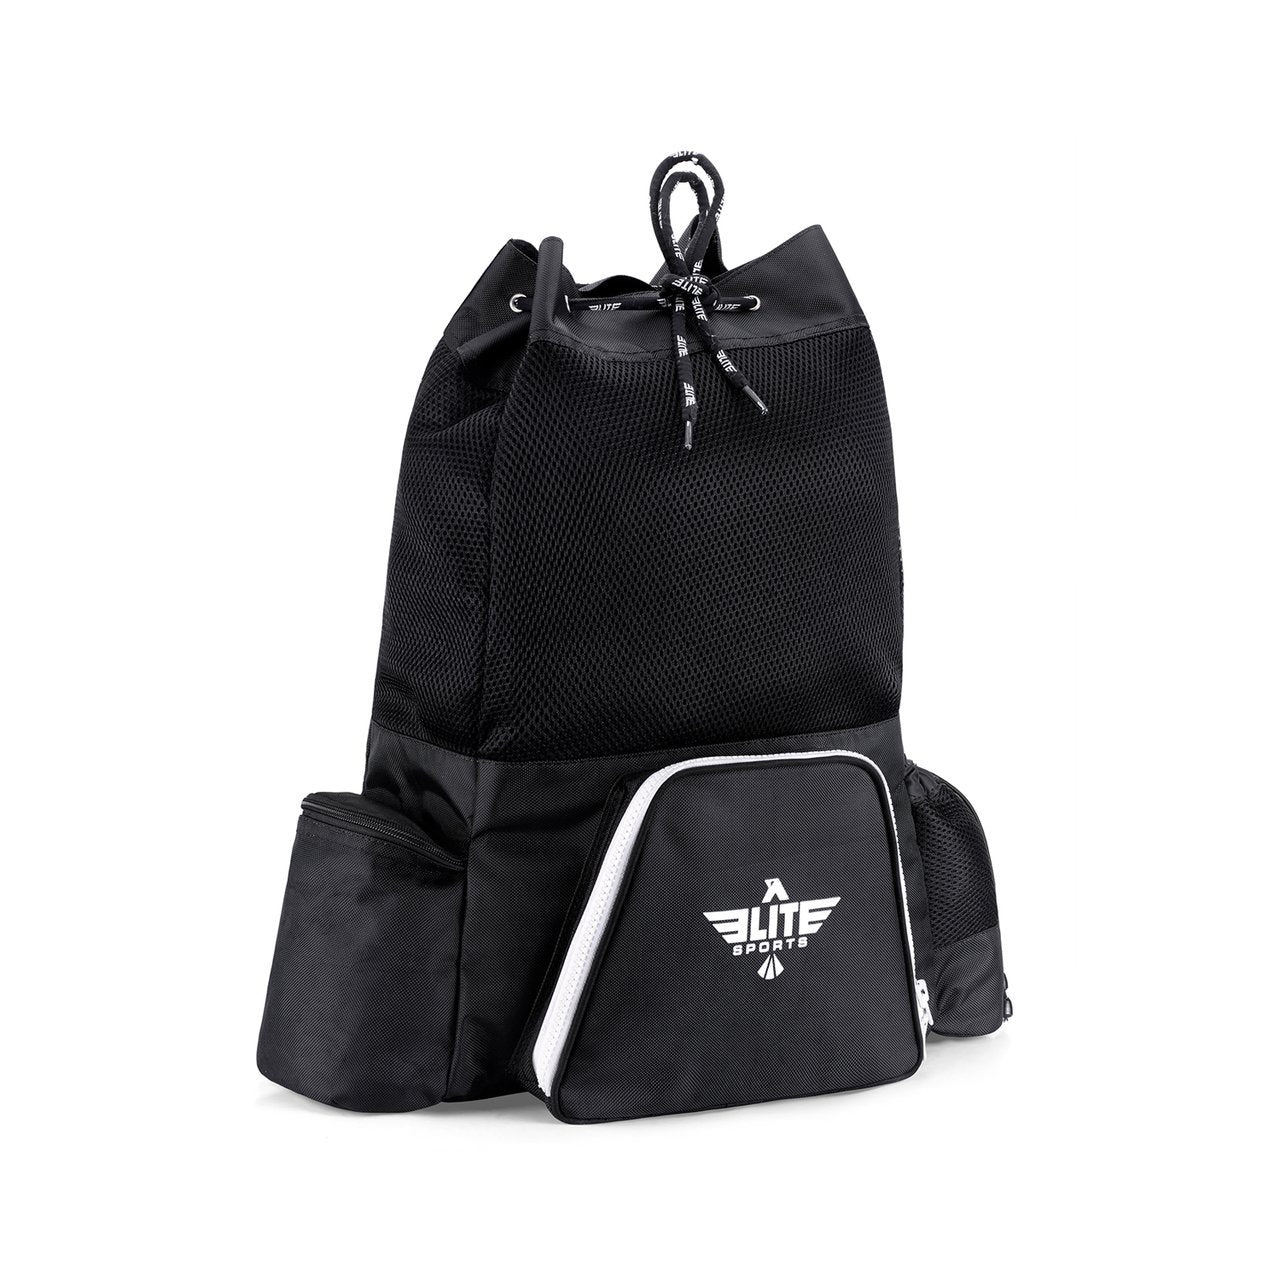 Load image into Gallery viewer, Elite Sports Mesh Black Medium Muay Thai Gear Gym Bag & Backpack